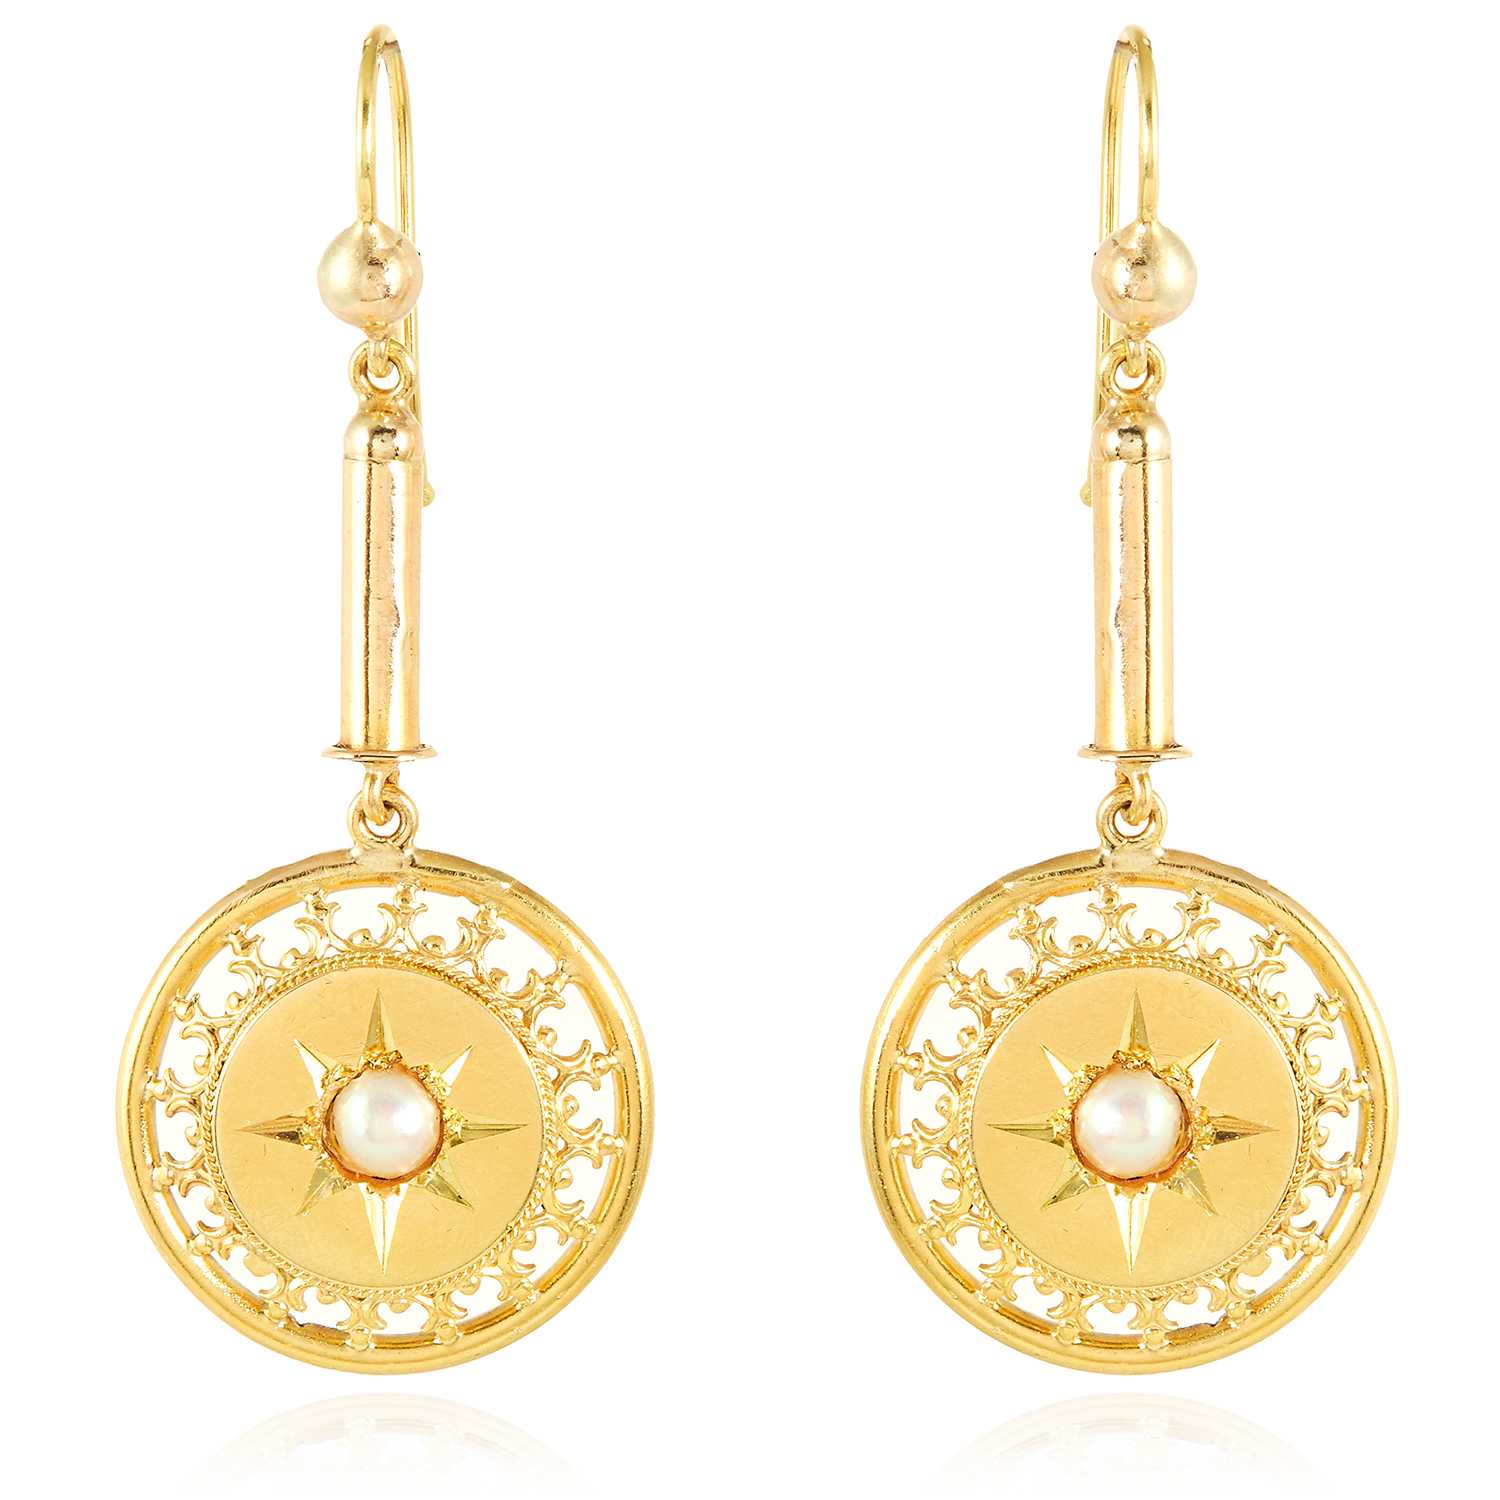 Los 58 - A PAIR OF ANTIQUE PEARL DROP EARRINGS, 19TH CENTURY in high carat yellow gold, each suspending a